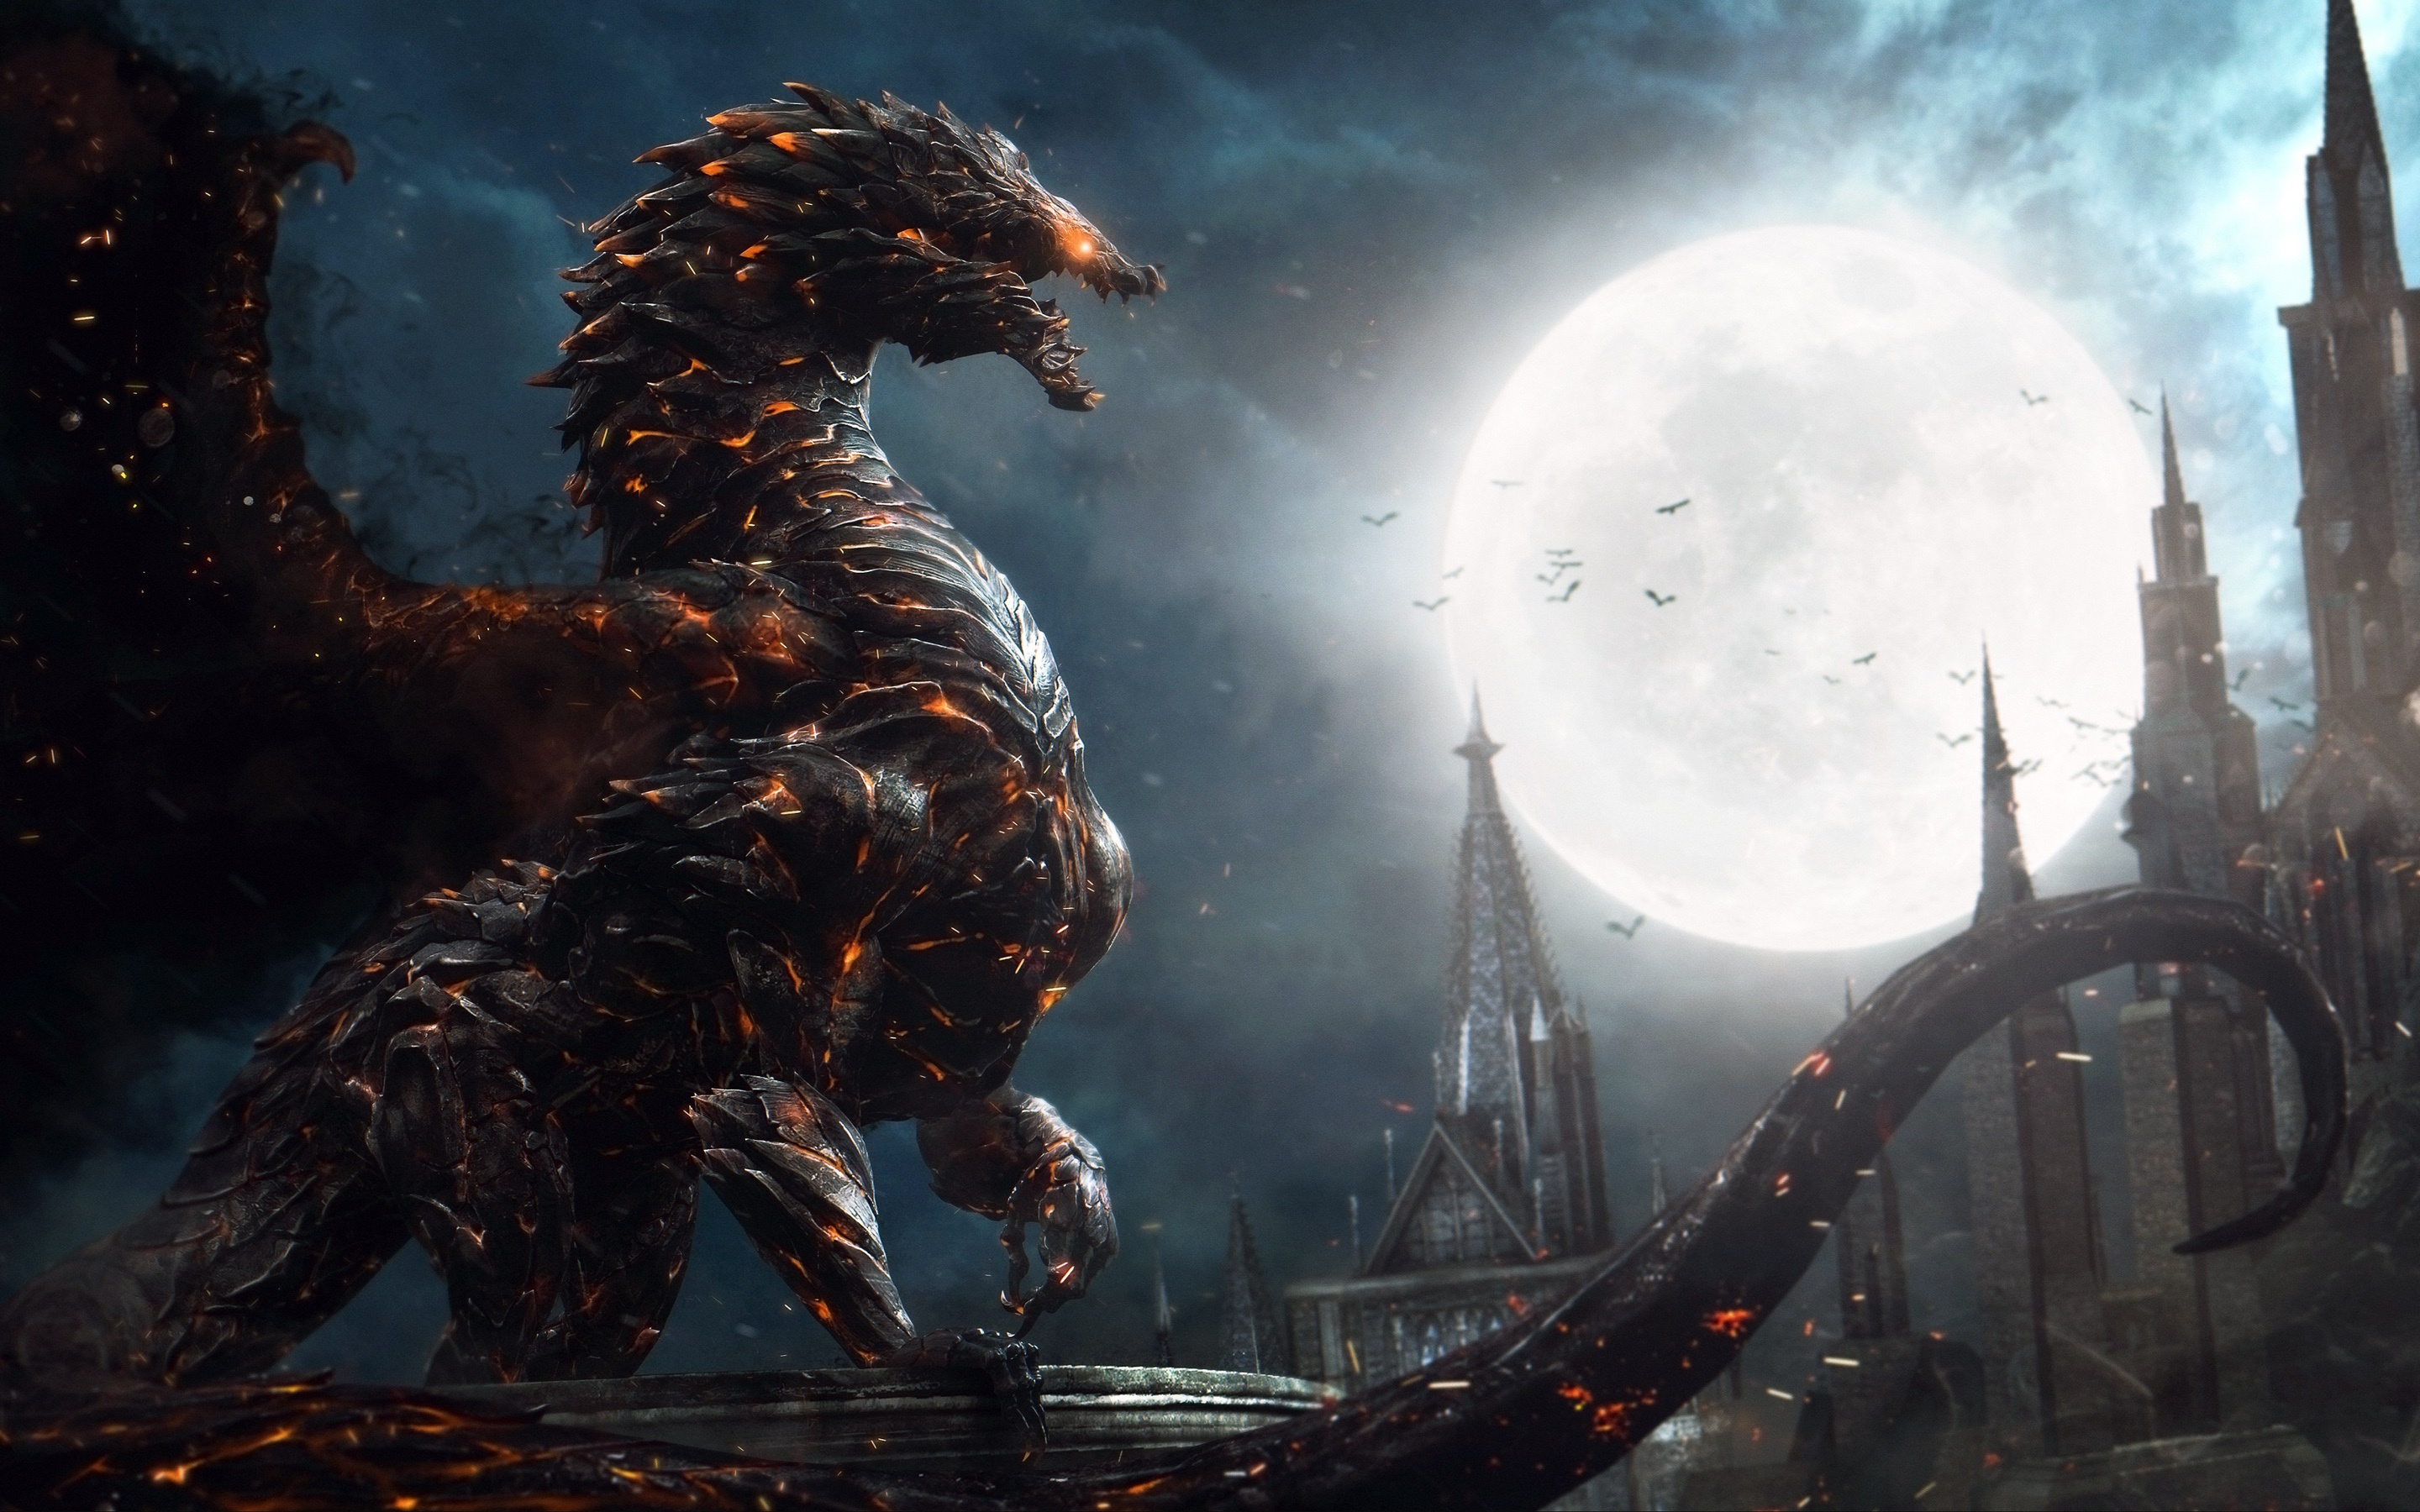 Lords Of Shadow 2 Dracula Wallpapers In Jpg Format For Free Download